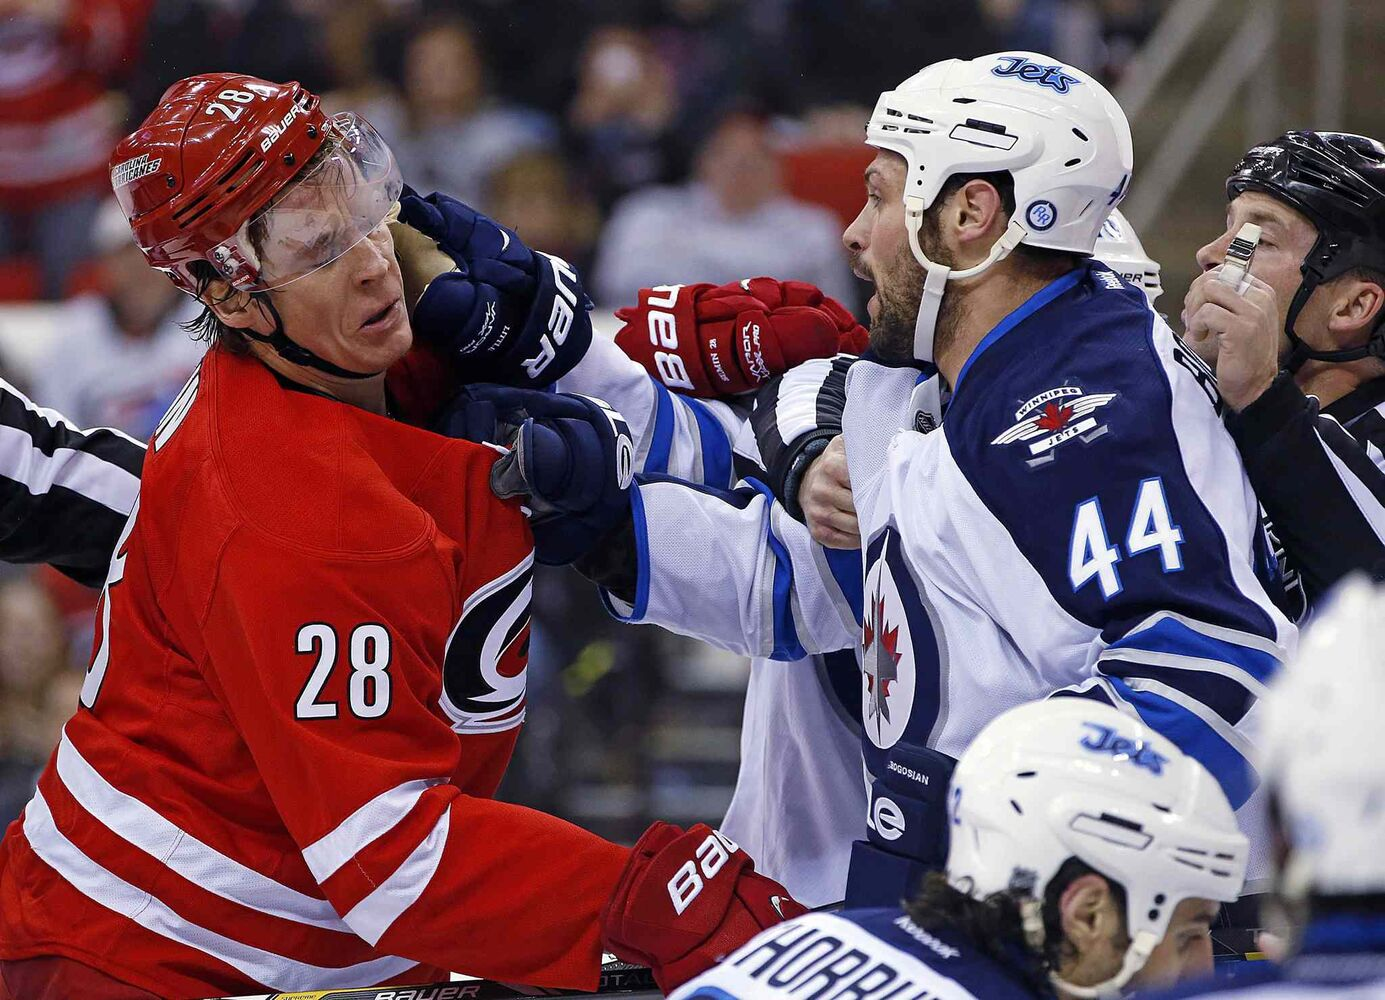 Carolina Hurricanes' Alexander Semin (28) and Winnipeg Jets' Zach Bogosian (44) have a second-period scuffle in front of the net during Tuesday's game. (Karl B DeBlaker / The Associated Press)